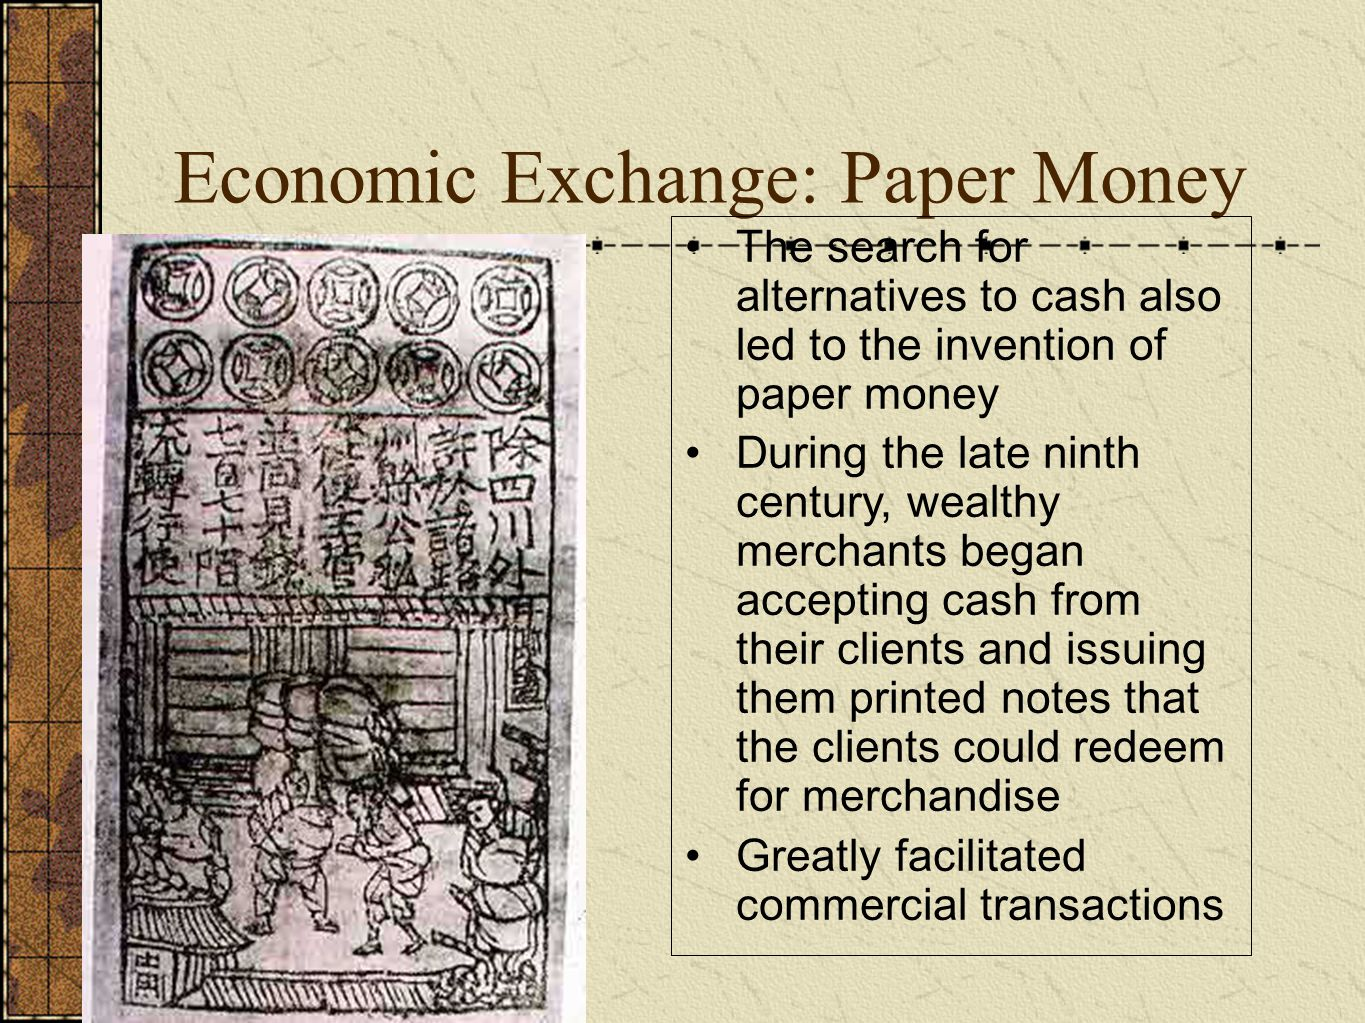 Economic Exchange: Paper Money The search for alternatives to cash also led to the invention of paper money During the late ninth century, wealthy merchants began accepting cash from their clients and issuing them printed notes that the clients could redeem for merchandise Greatly facilitated commercial transactions